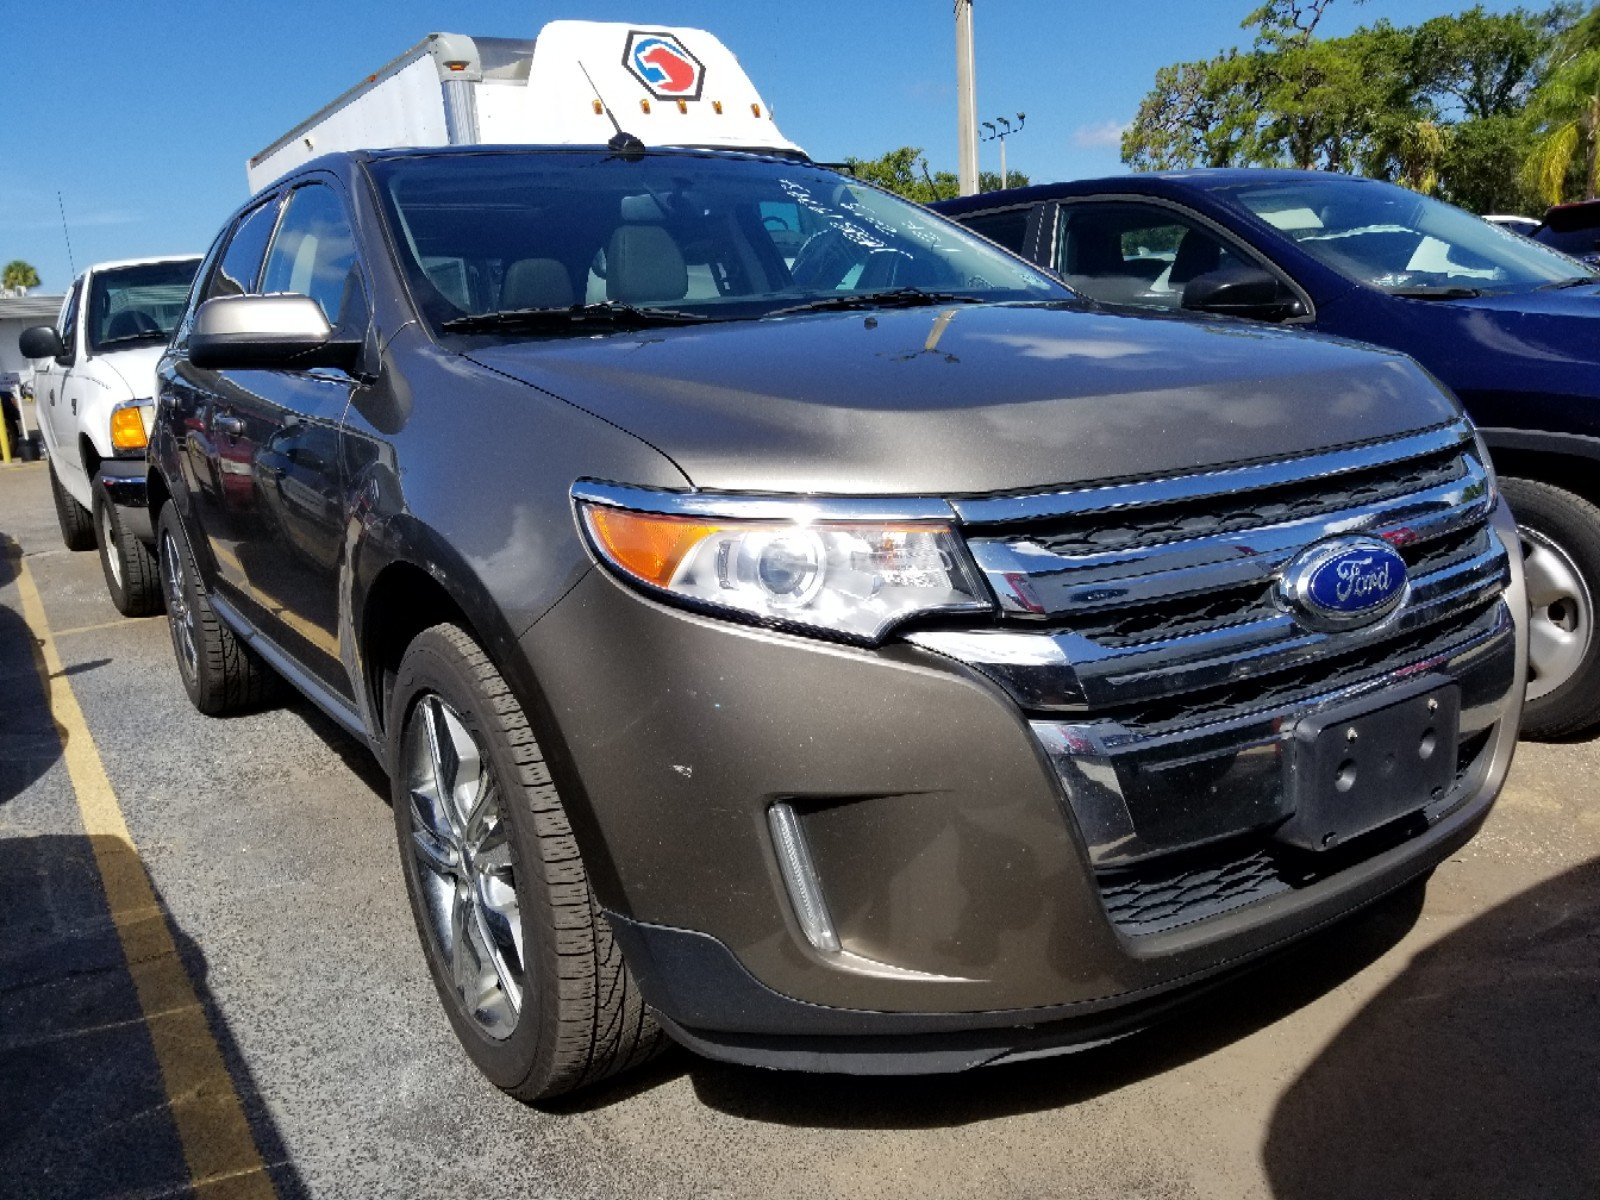 Ford Edge Fuel Filter Explorer Sport Trac Pre Owned Limited Utility In Sarasota 1600x1200